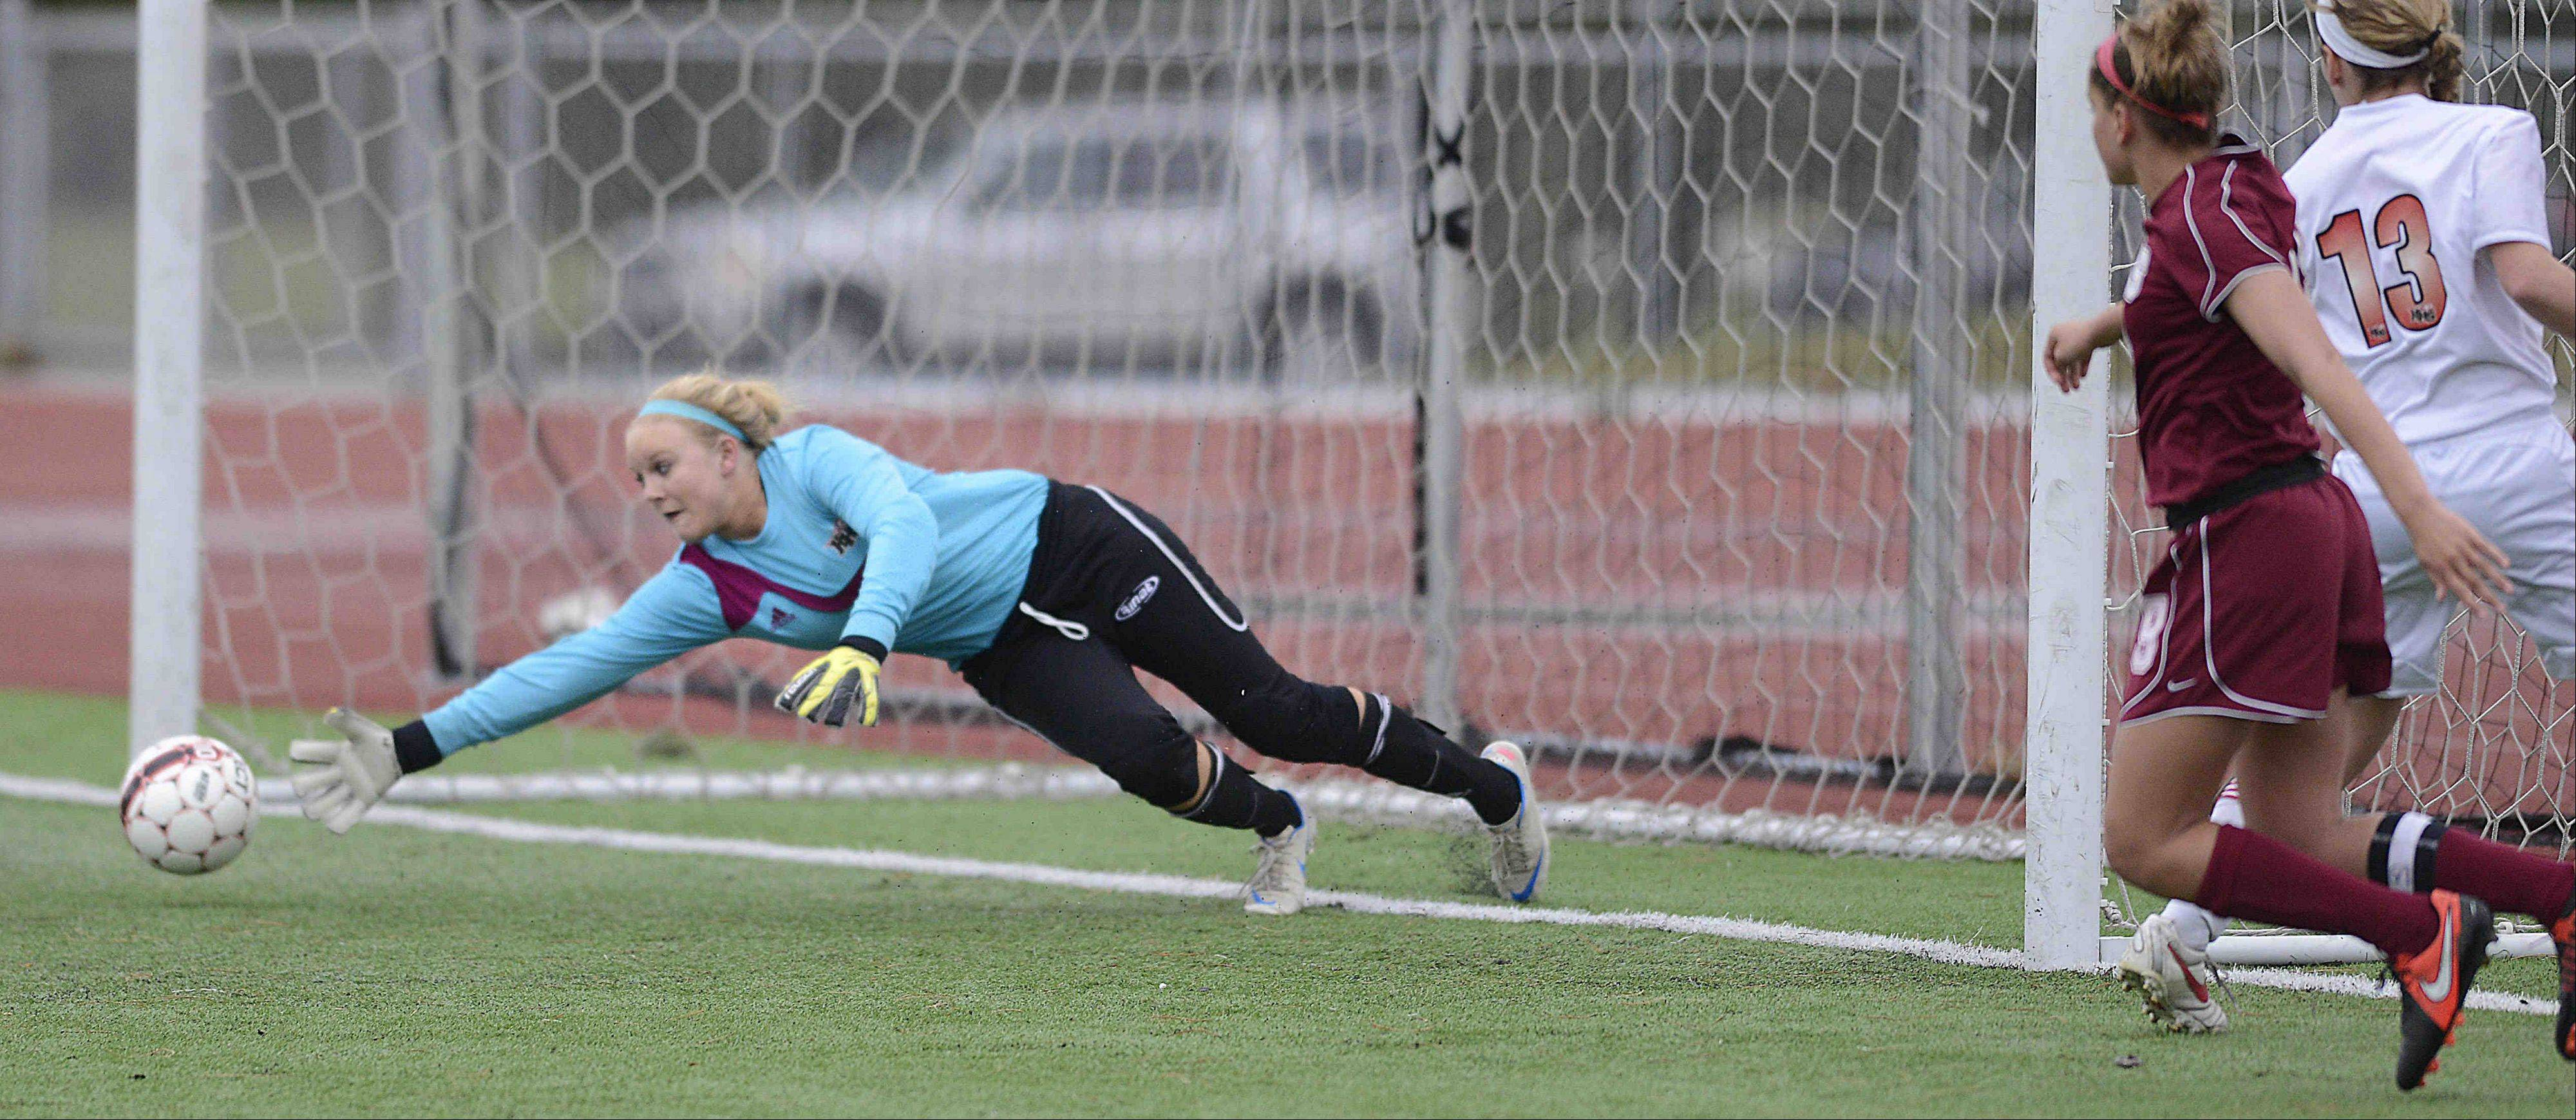 Huntley goalkeeper Jessica Galason dives for a shot that goes wide from Plainfield North's Shayna Dheel Thursday in the Pepsi Showdown quarterfinal game at Northern Illinois University in DeKalb.